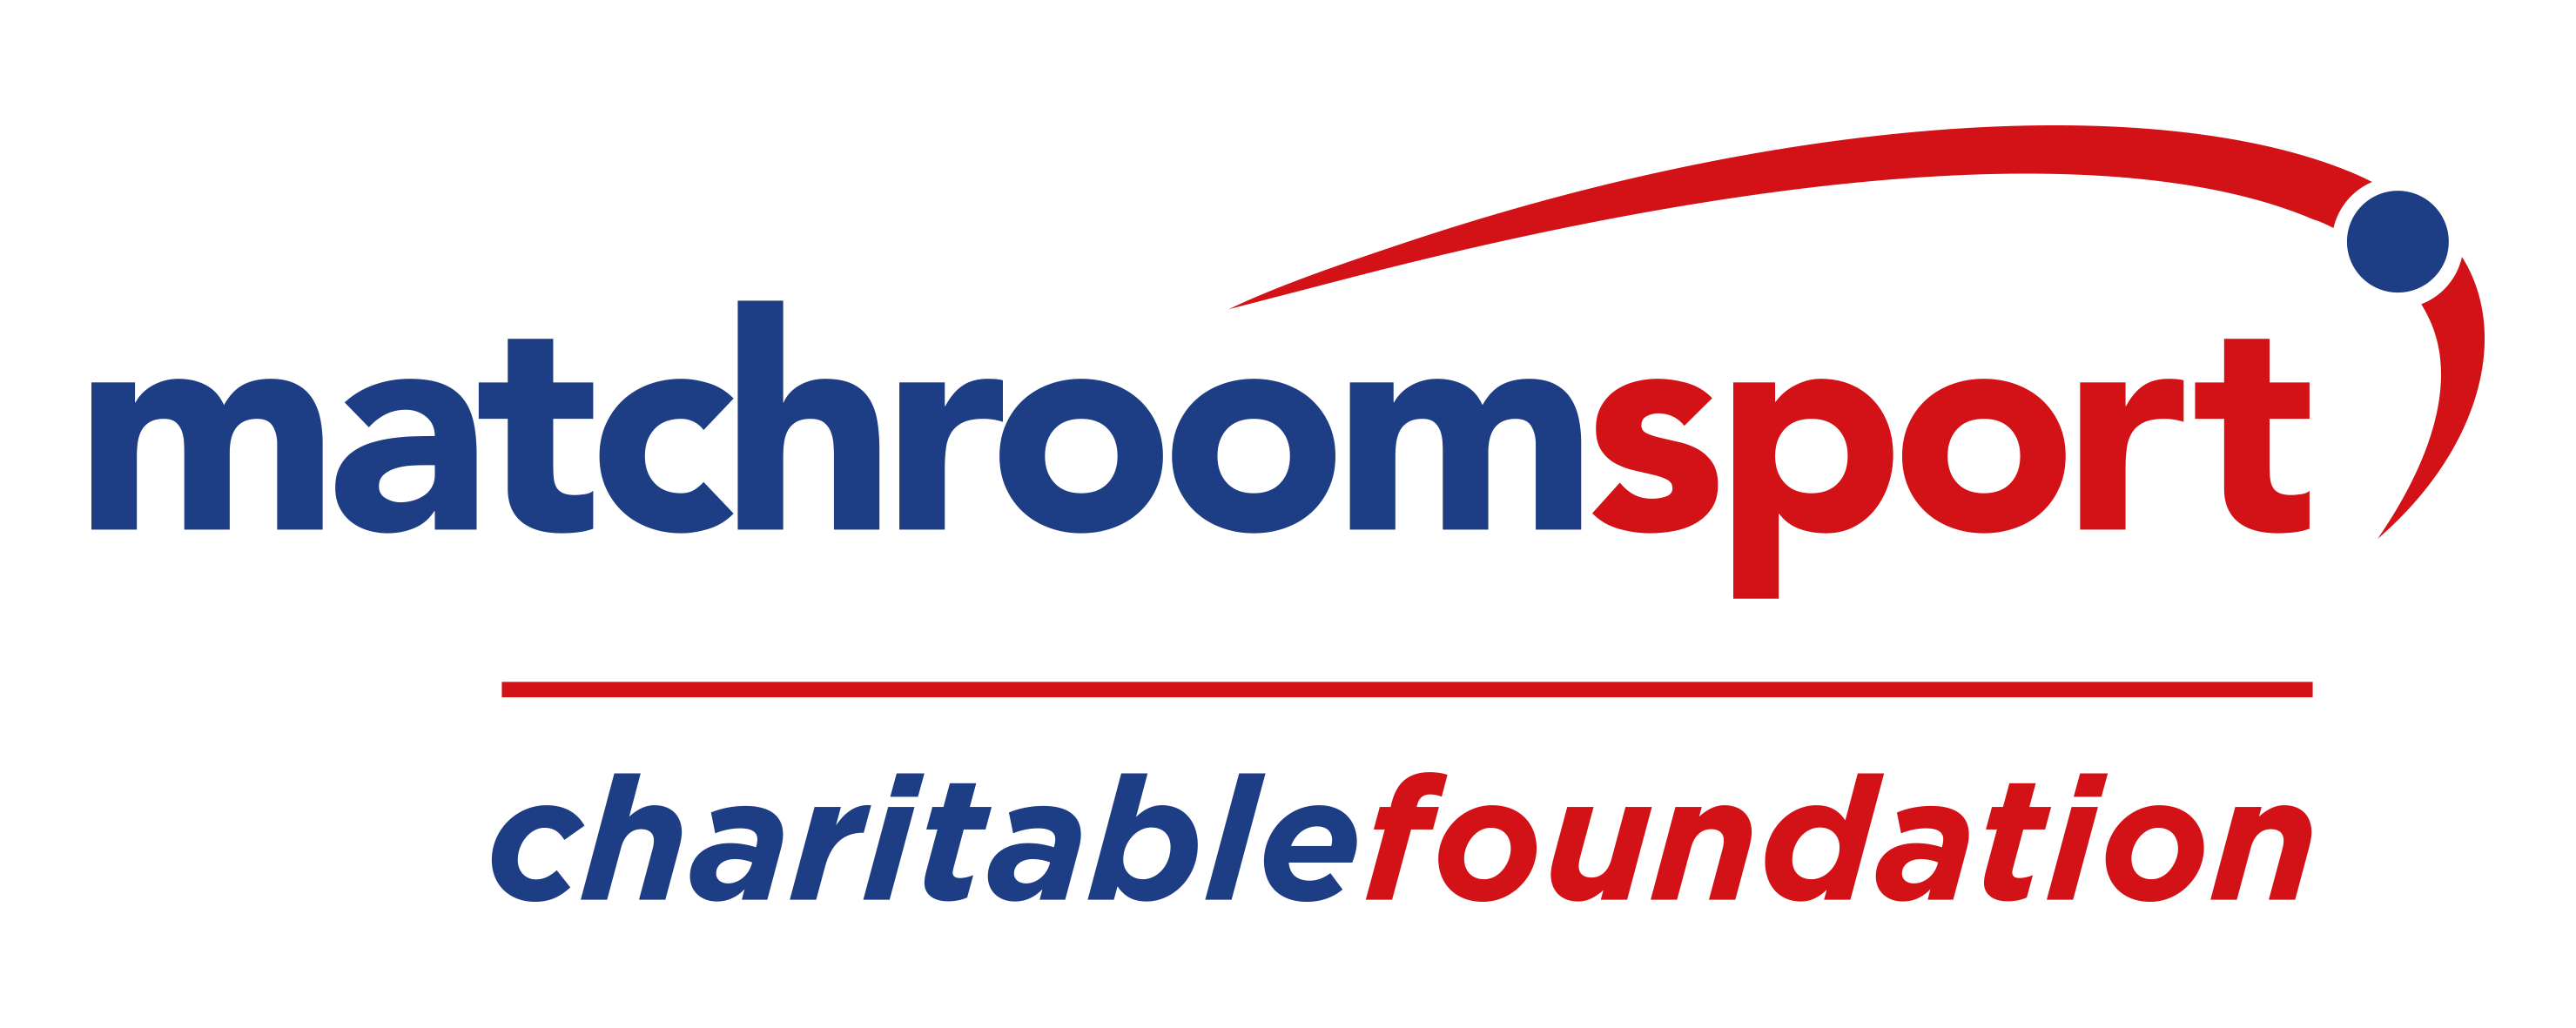 Matchroom Sport Charitable Foundation